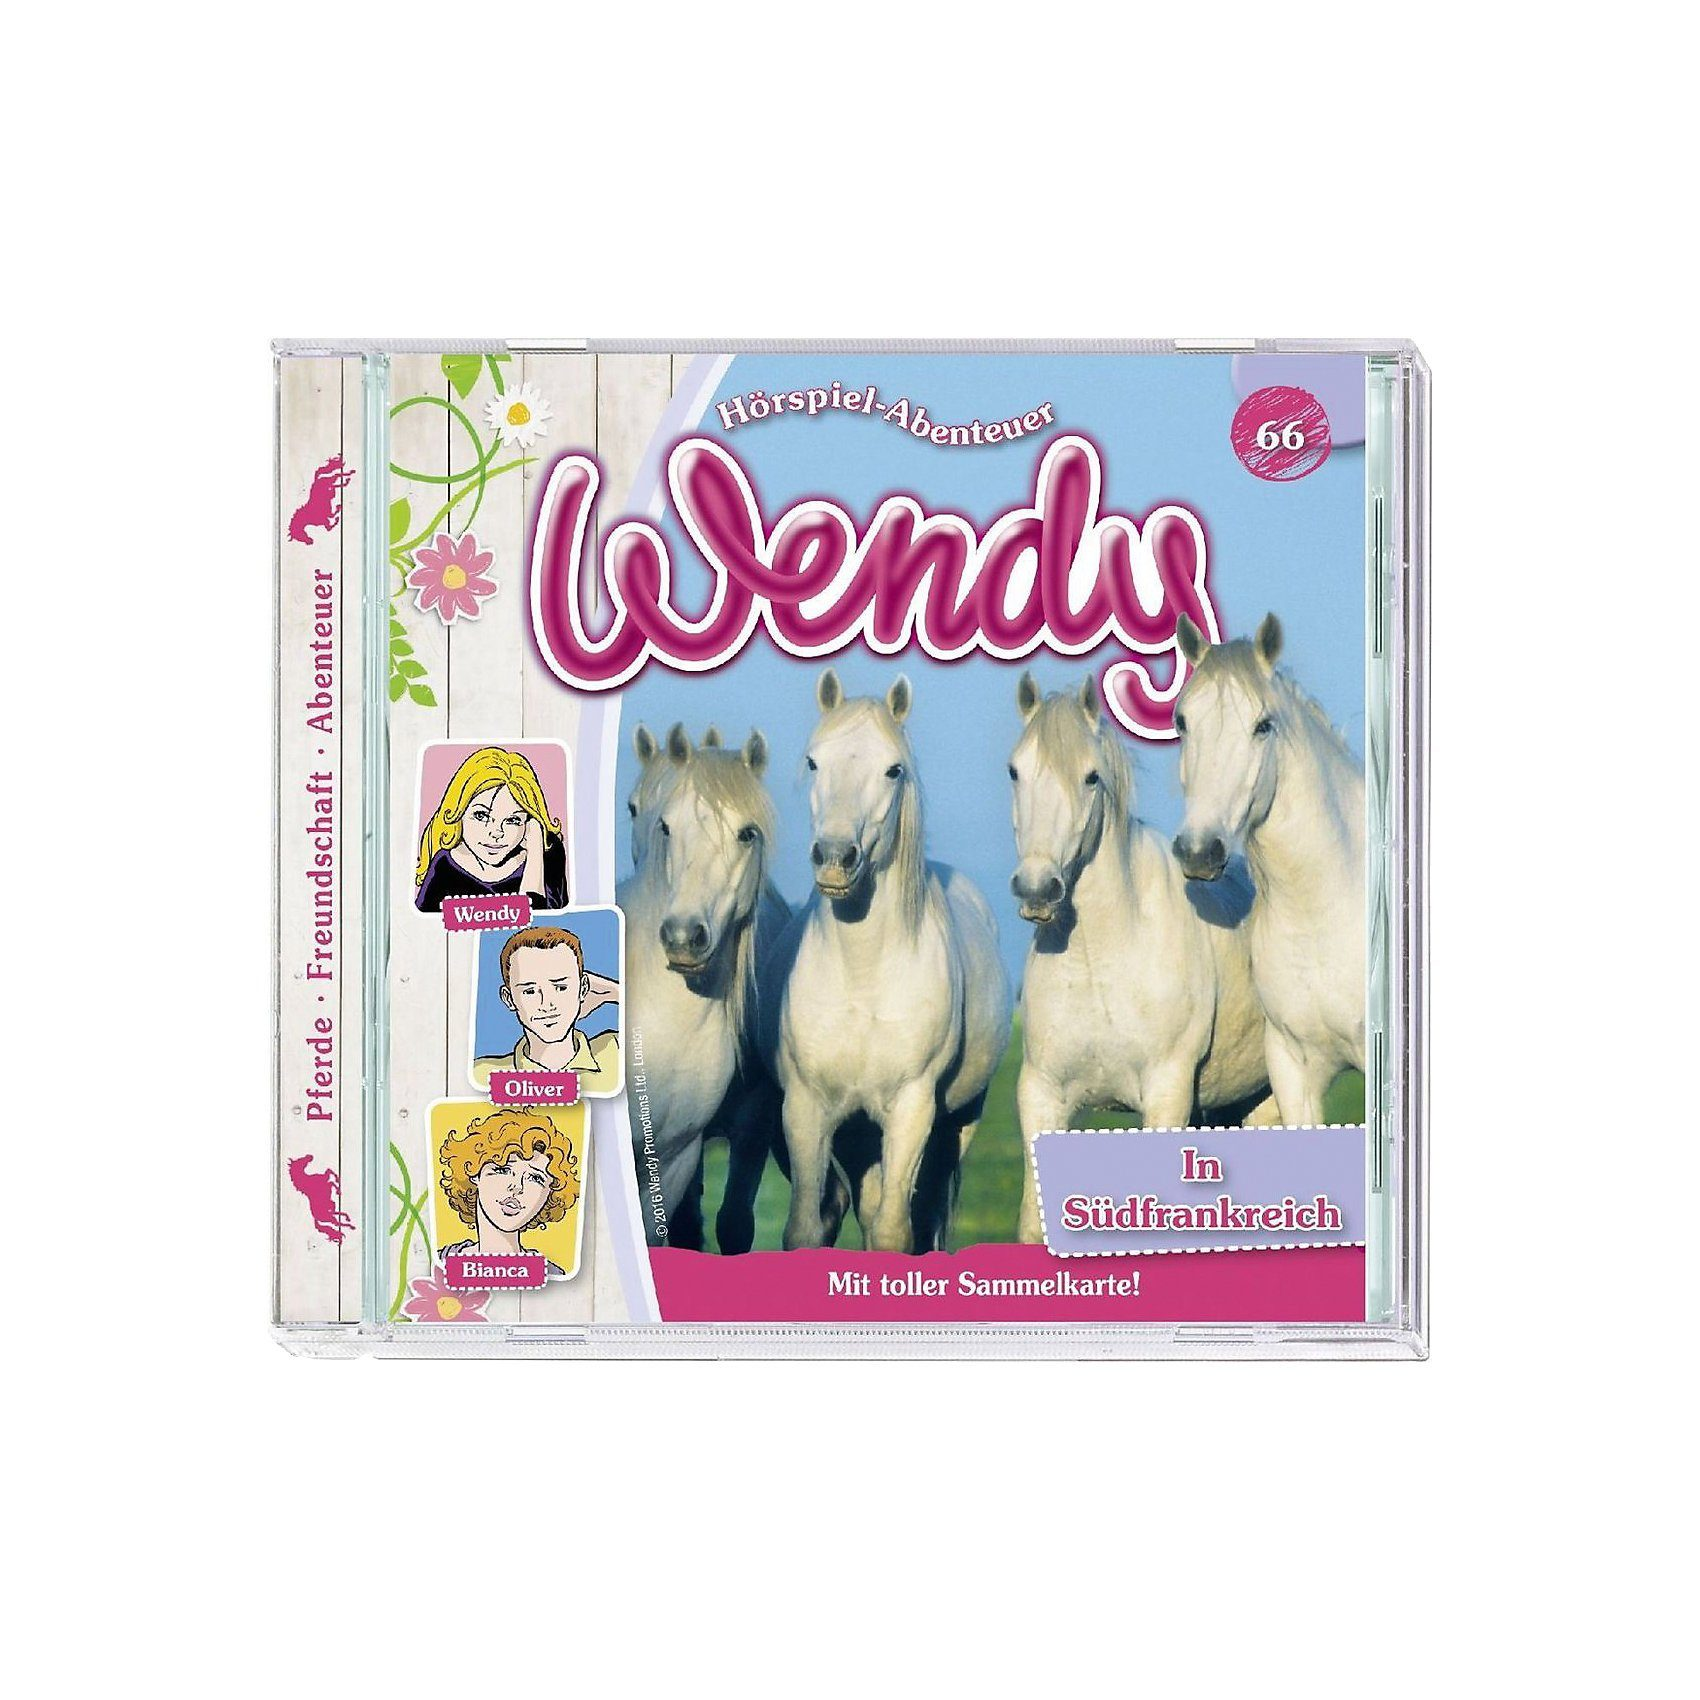 Kiddinx CD Wendy 66 - In Südfrankreich